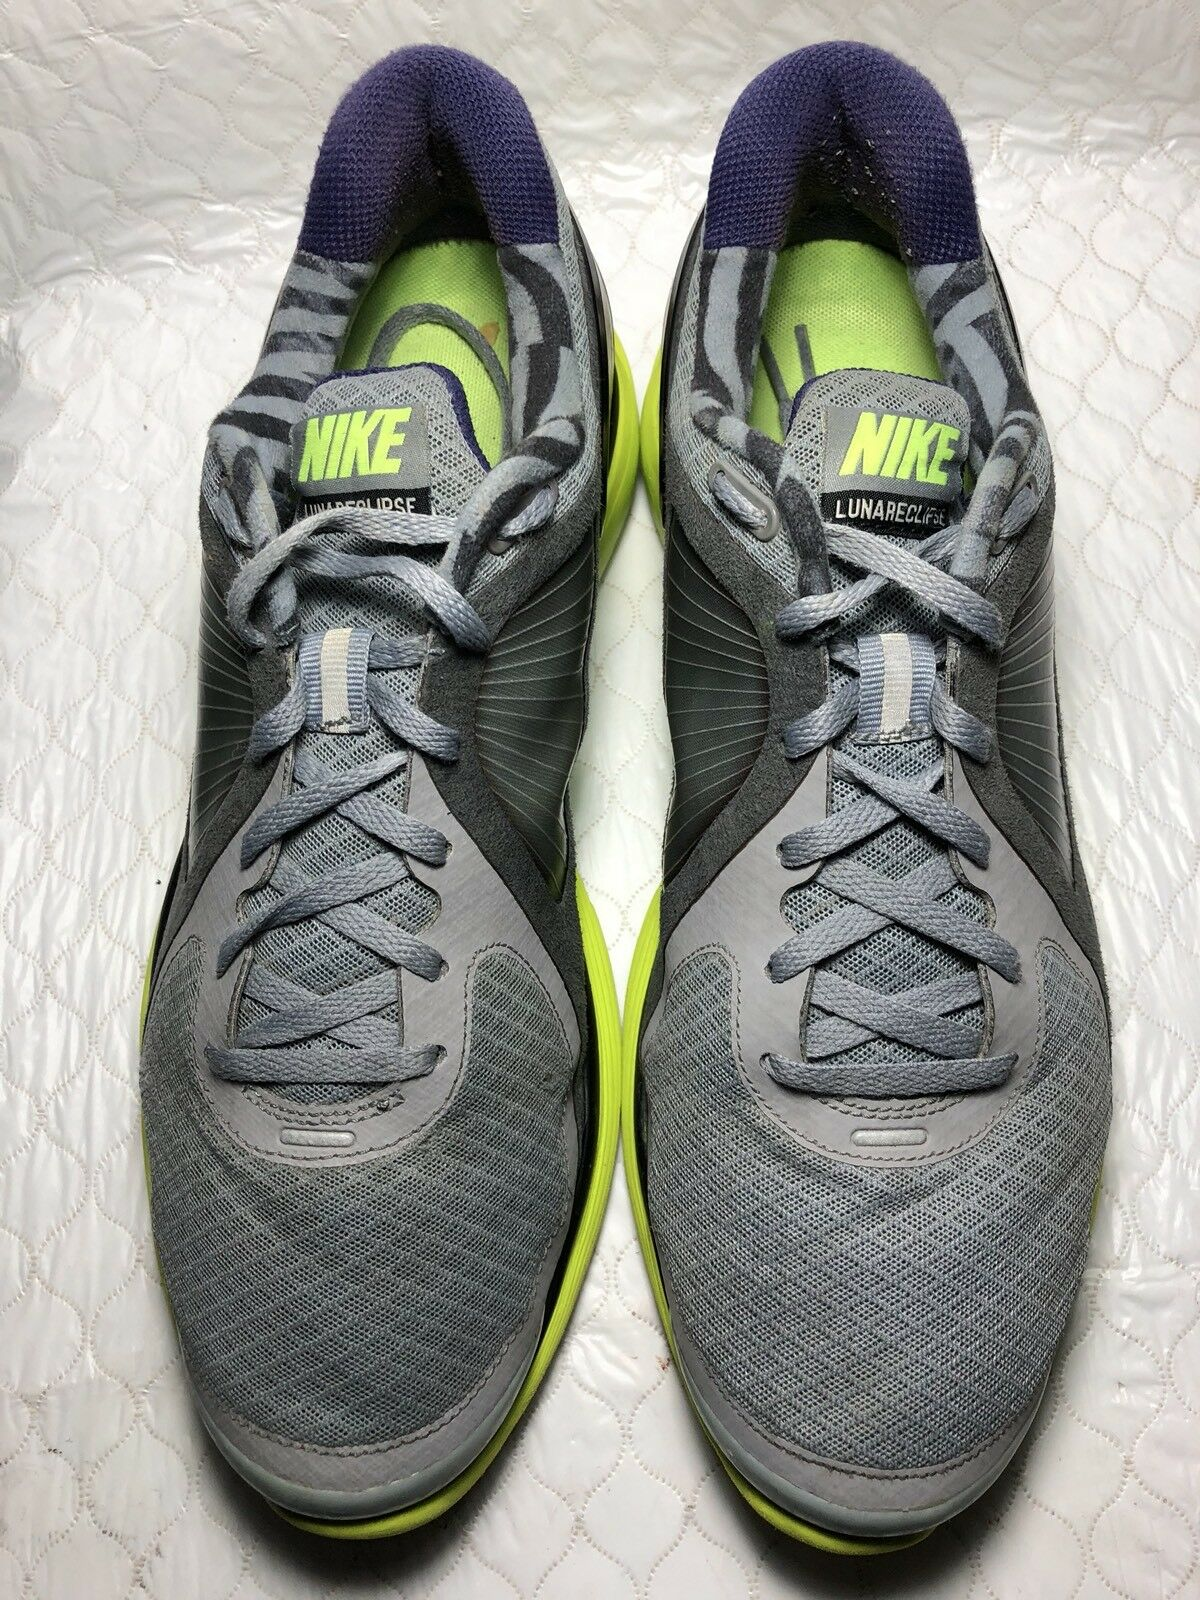 Nike Lunar Eclipse Men's Gray Running Shoes Comfortable